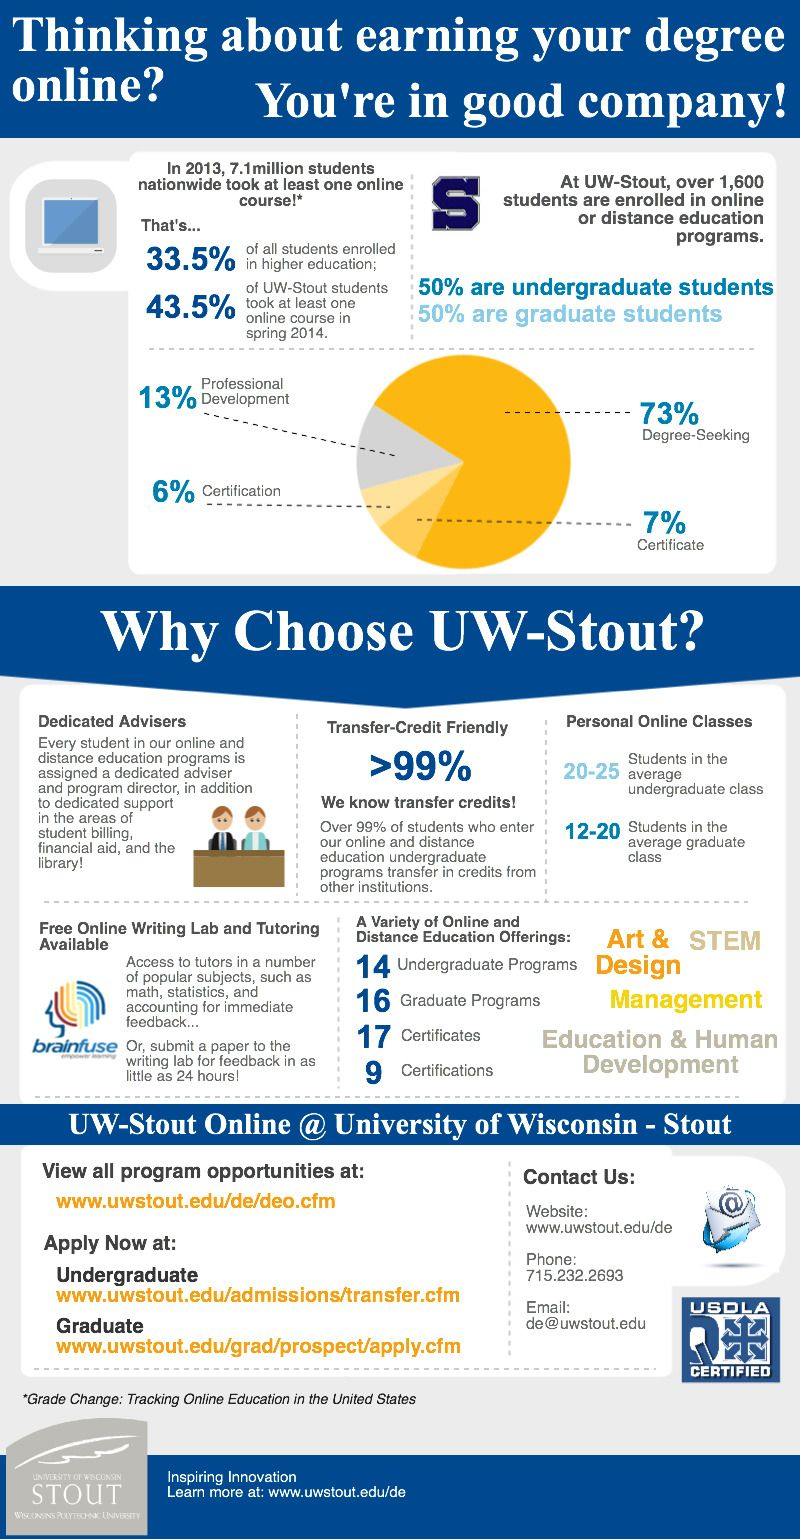 UWStout Online Online student, Online learning